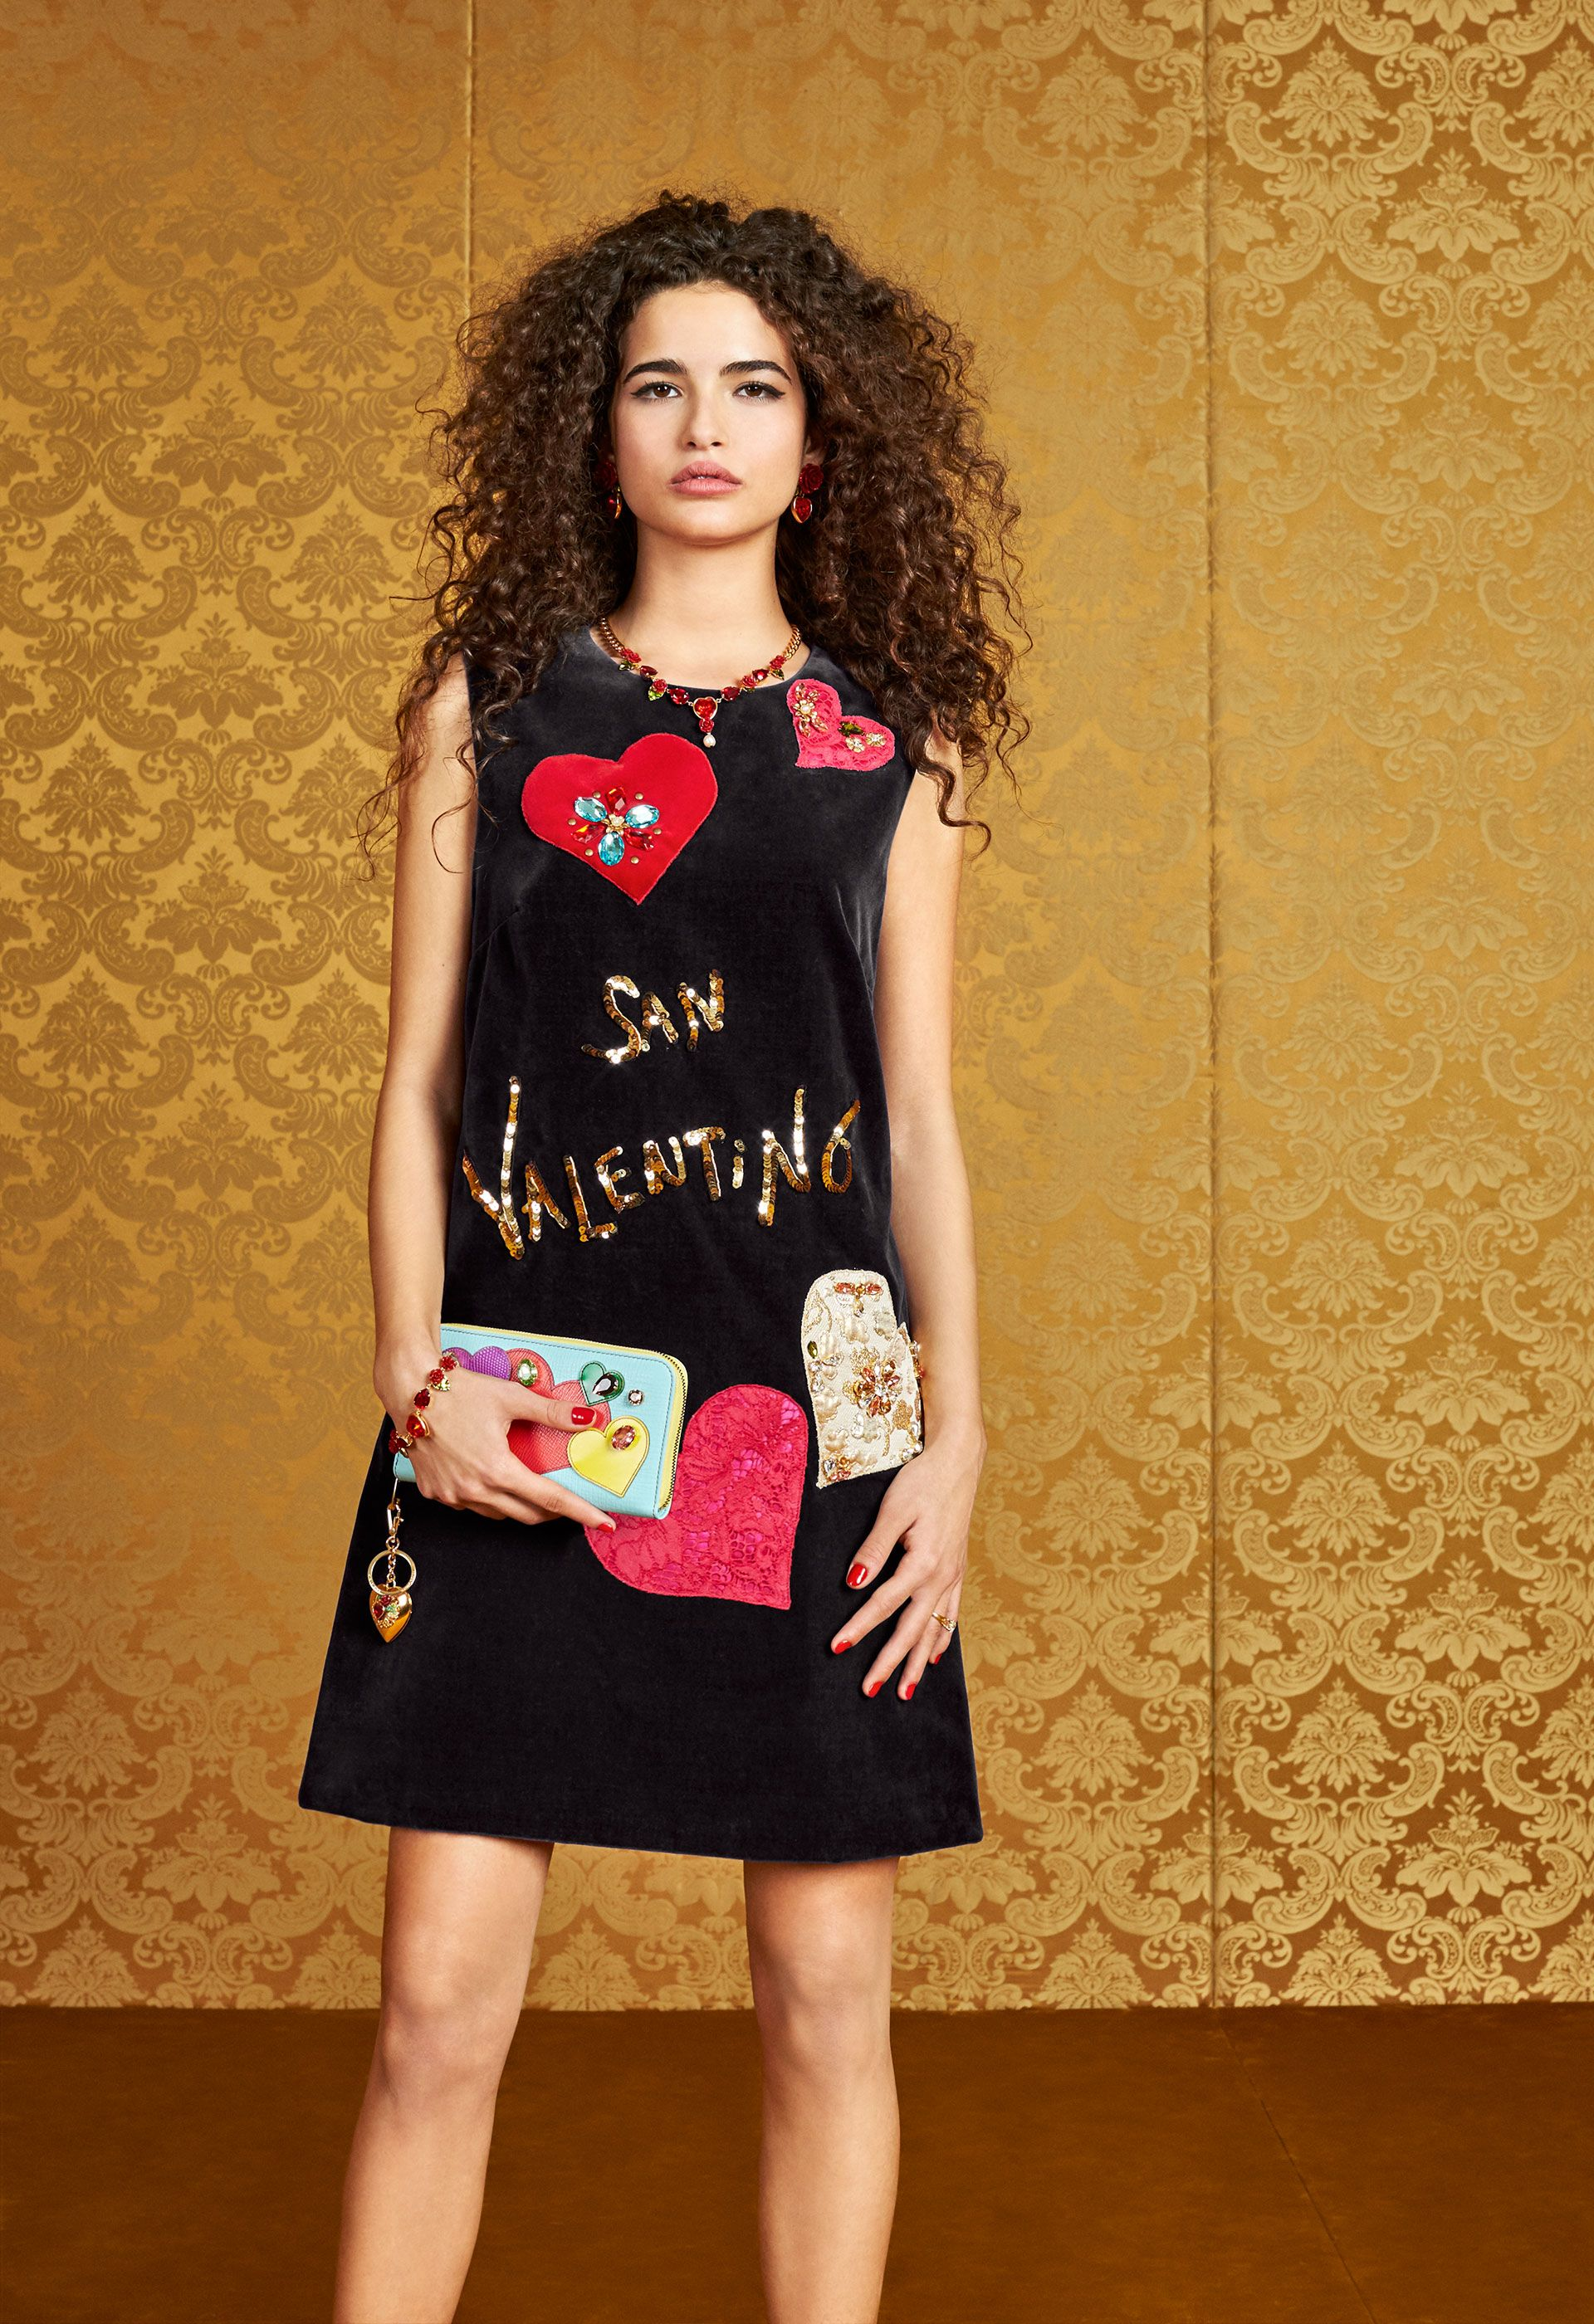 Dolce&Gabbana has a gift for the beloved: a special men and women's capsule collection created to celebrate love on the most romantic day of the year. Discover the collection on bit.ly/1Pz64FW #DGSanValentino